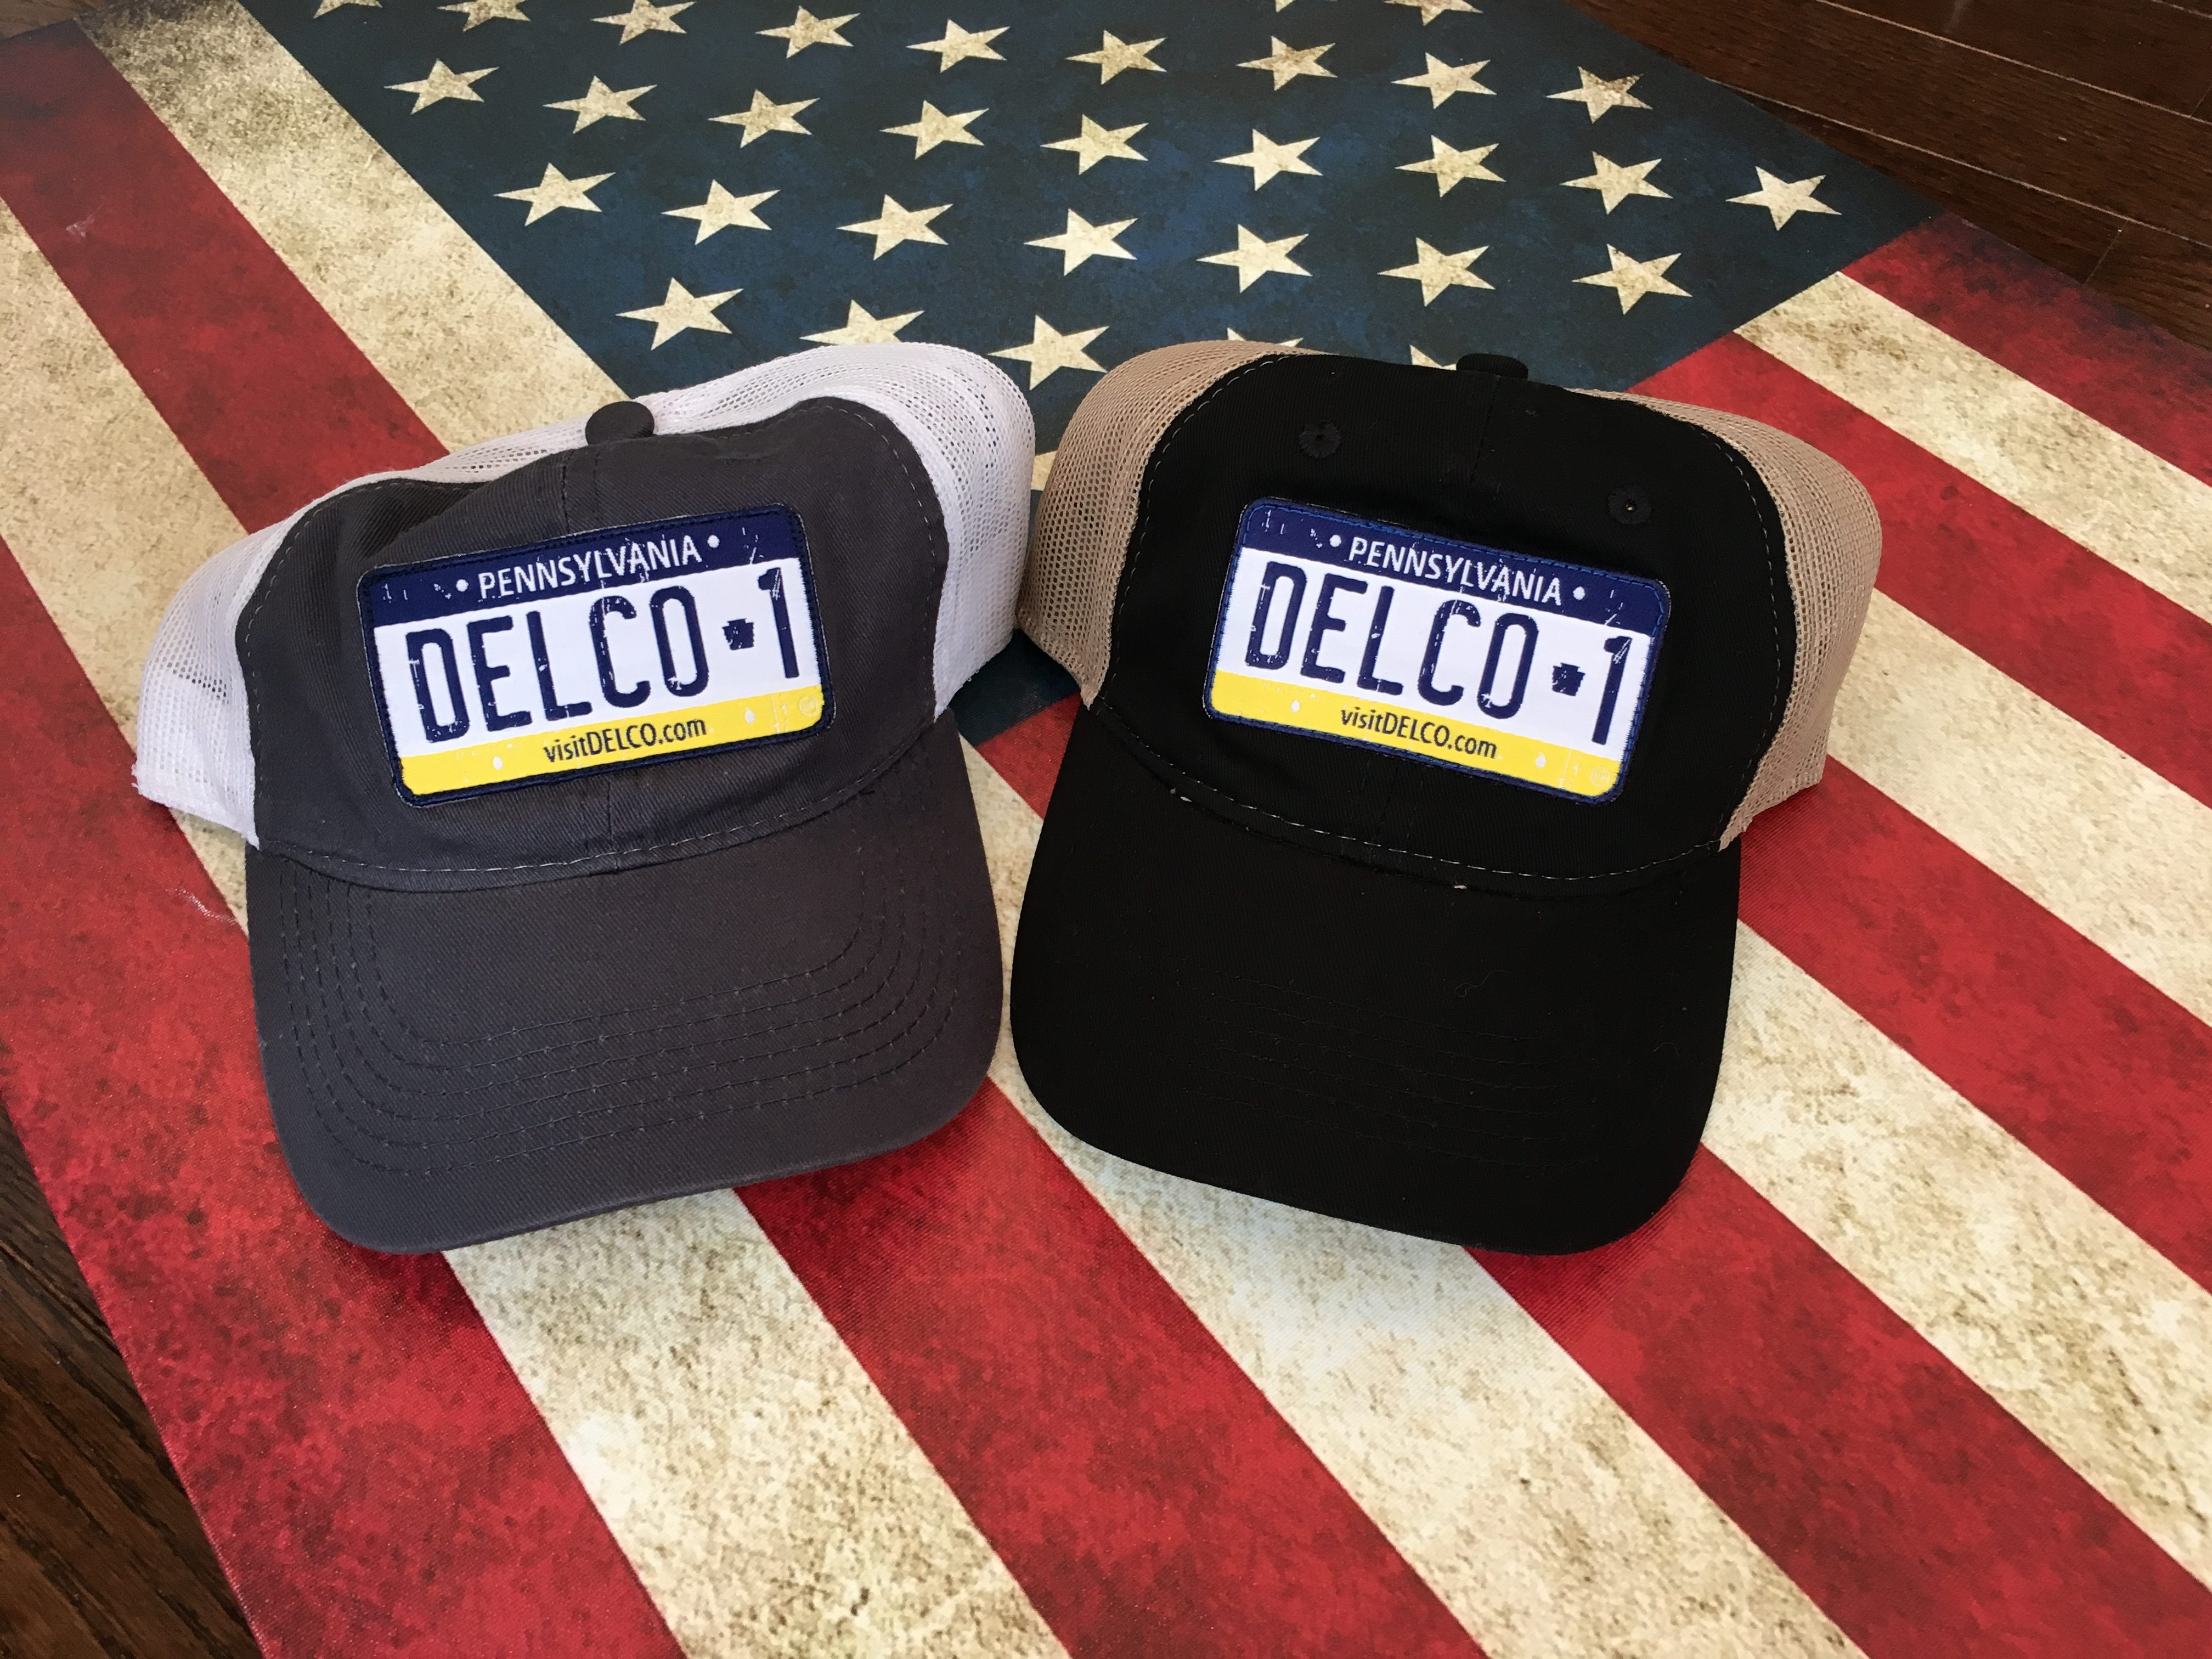 a4d1be8cee5 ... DELCO Trucker Hat- Unisex. TRUCK